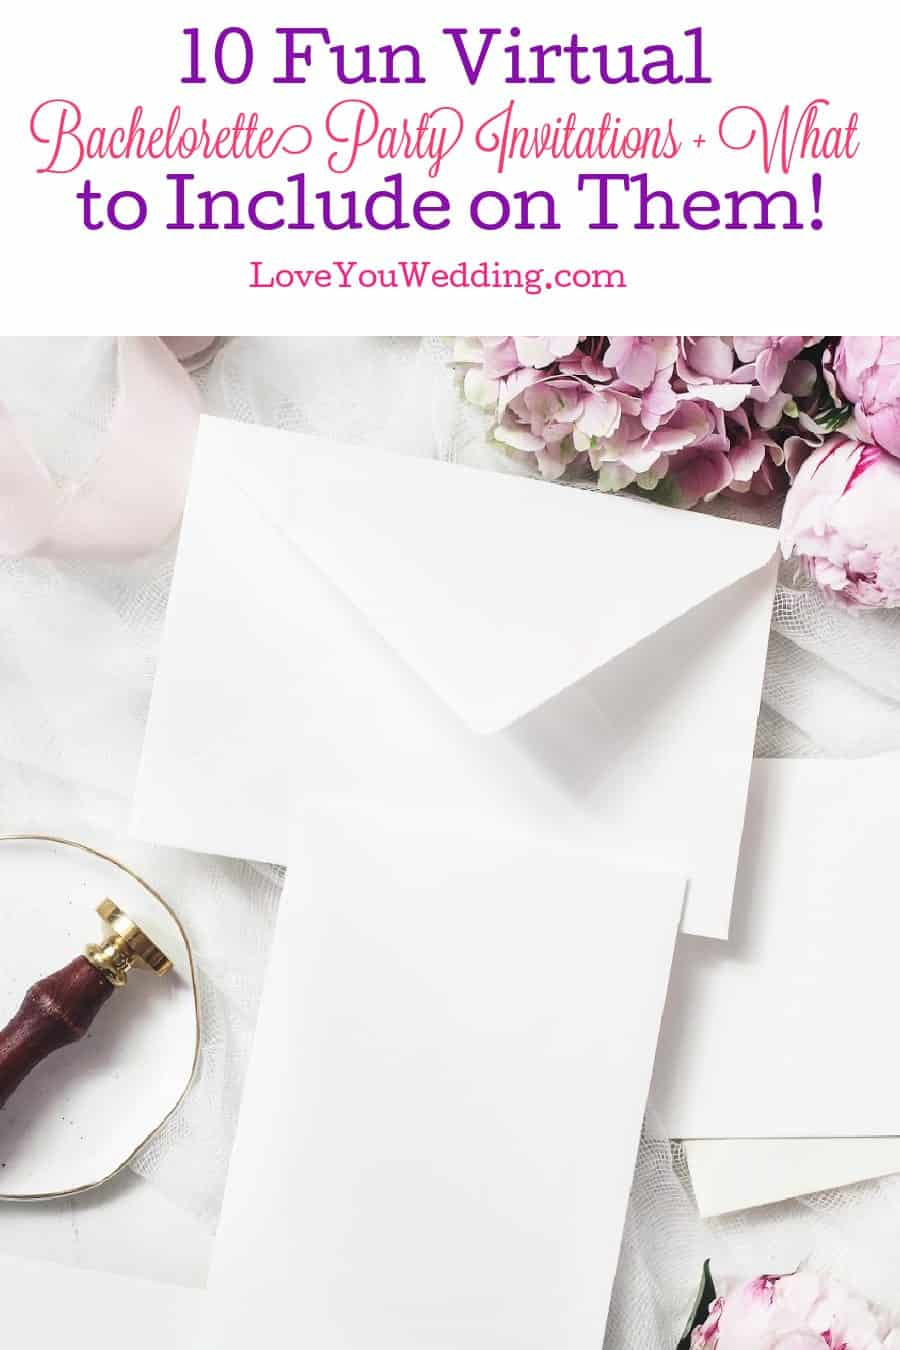 Looking for some amazing ideas for virtual bachelorette party invitations and what to include on them? Check out our guide & recommendations!